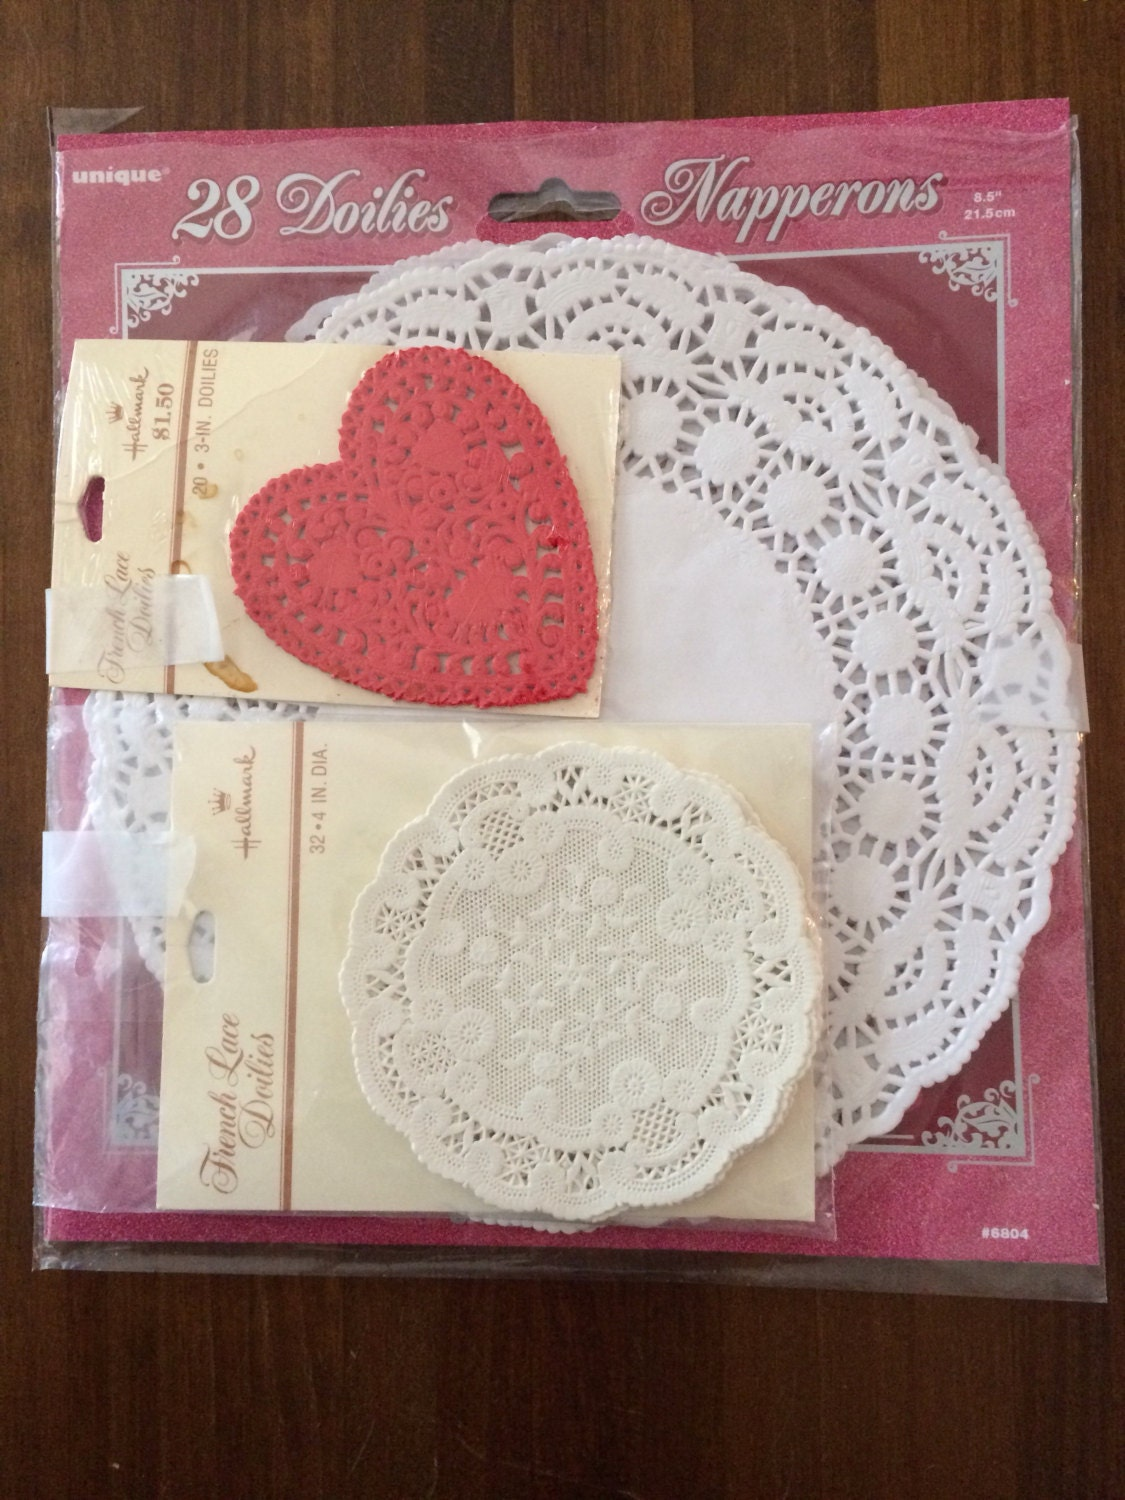 Vintage French Lace Doilies Wedding Decor Heart Shaped Doilies